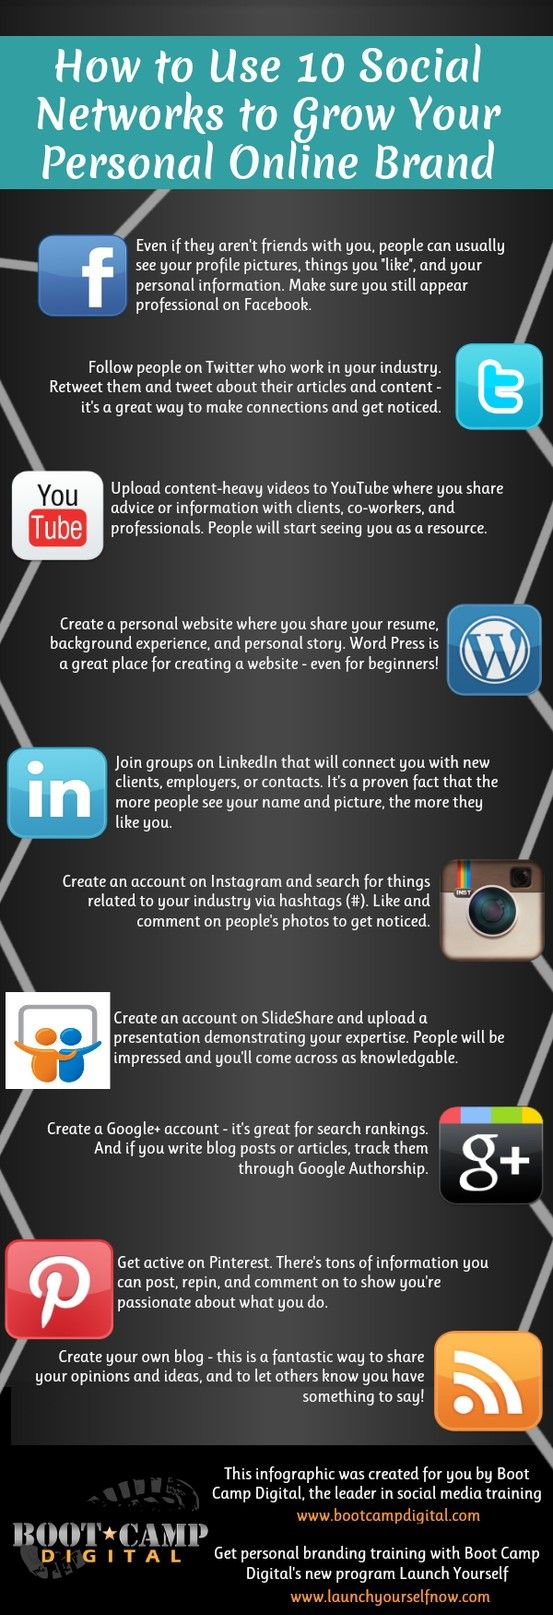 How to use 10 Social Networks to grow your personal Online brand #infografia #infographic #socialmedia